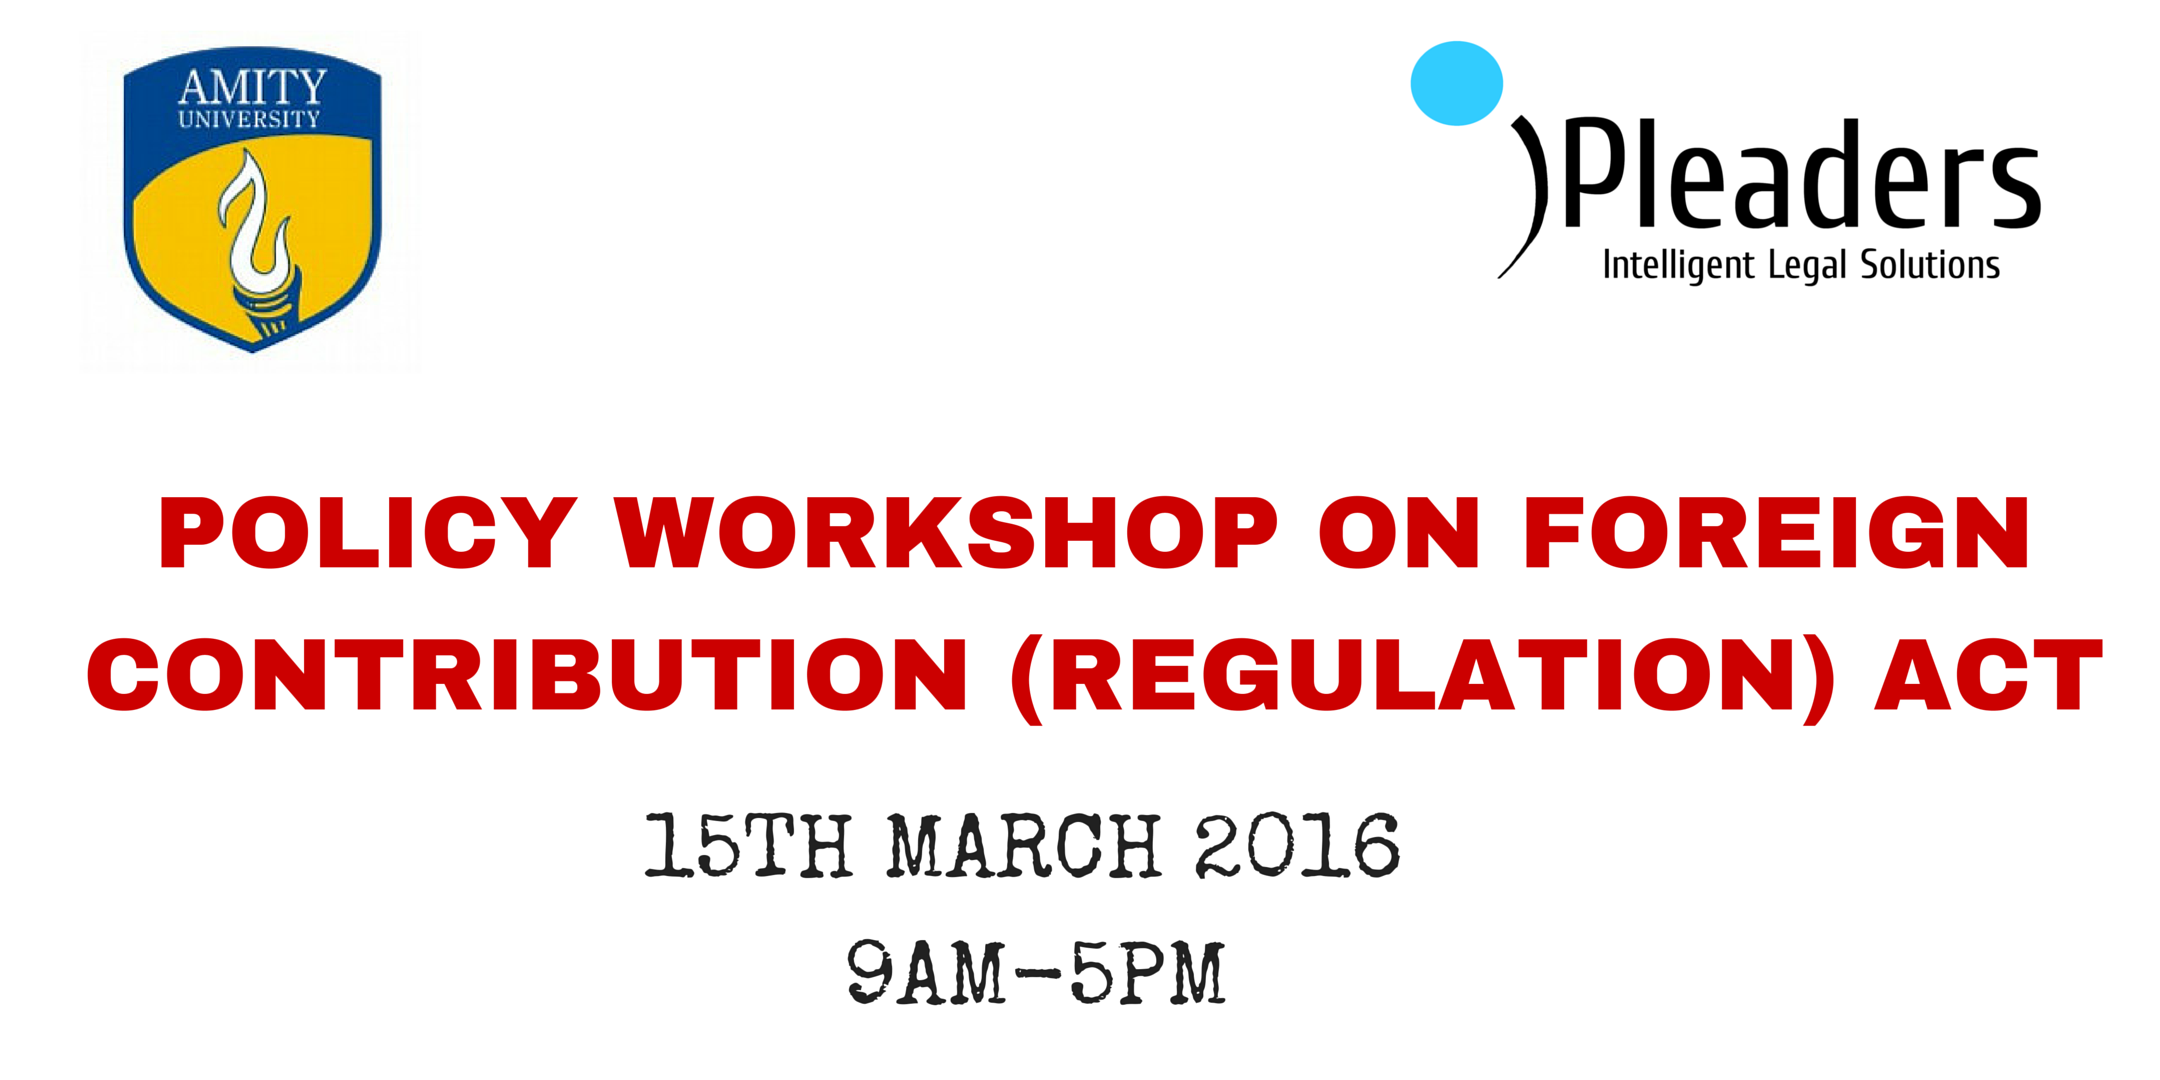 One-day Policy Workshop on Foreign Contribution Regulation Act